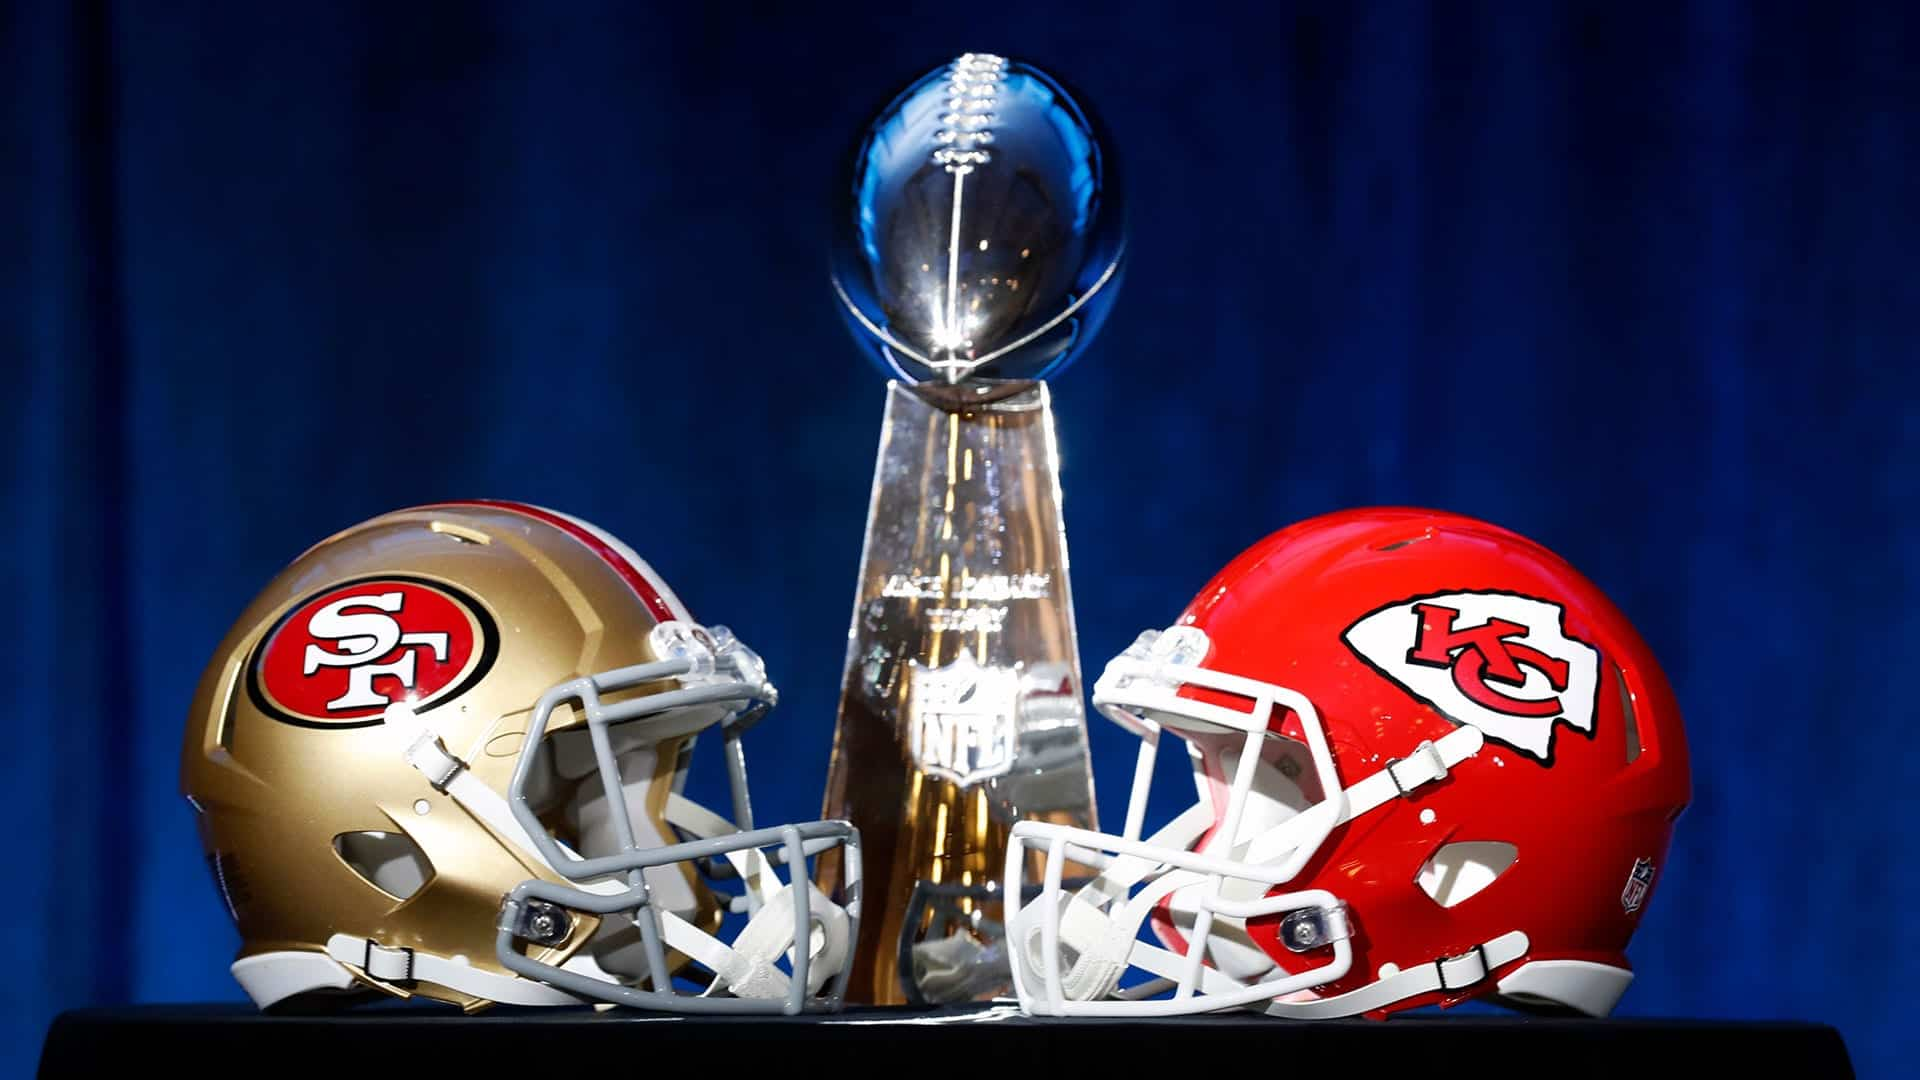 Super Bowl Sunday is here. Will the Chiefs or 49ers win the game?